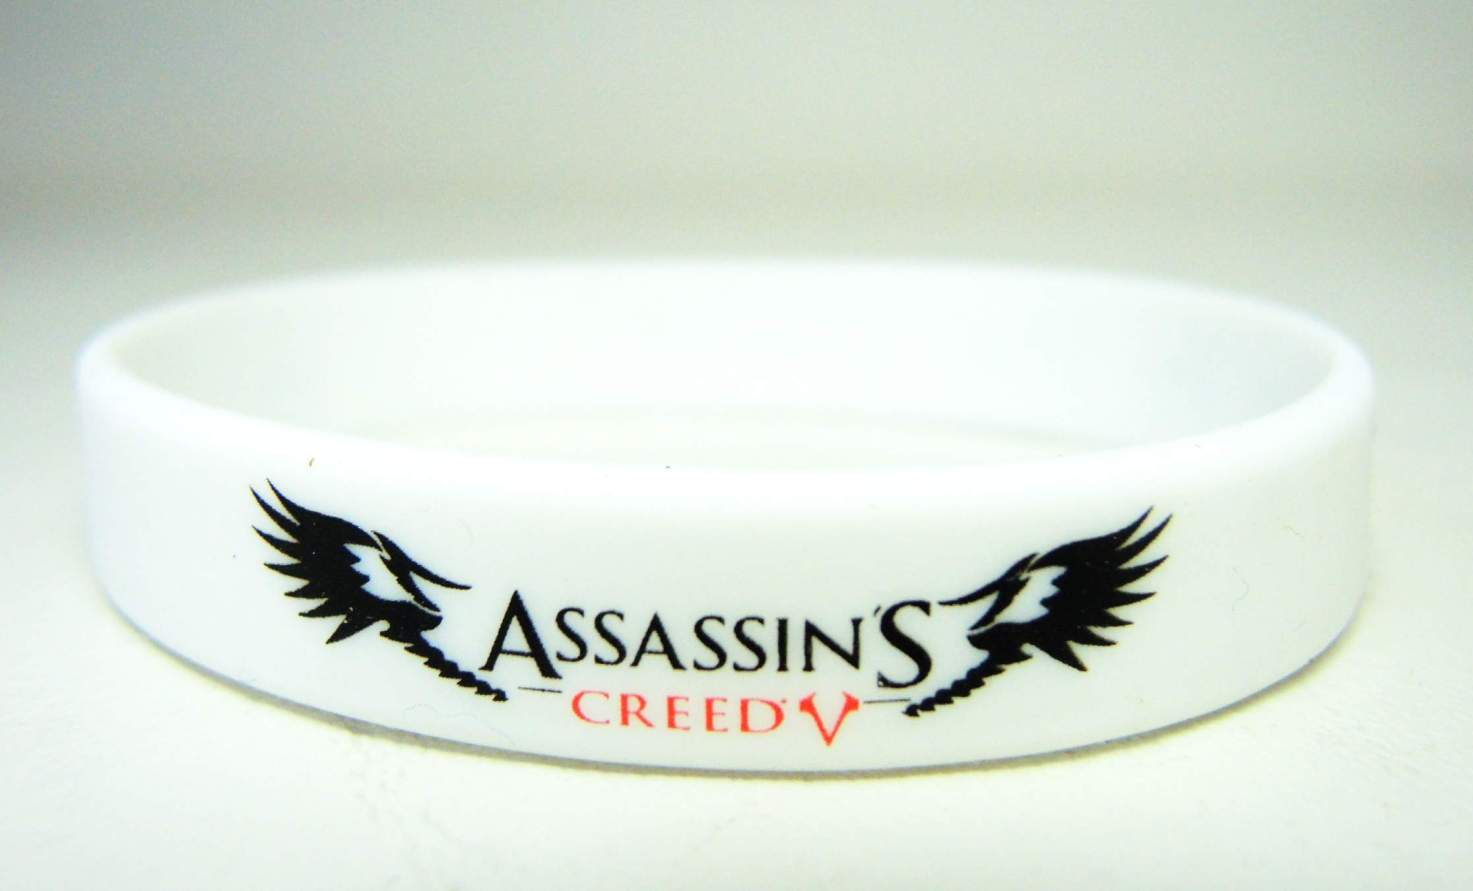 Assassins Creed - Live by the Creed rubber bracelet (white) China, Assassins Creed, Novelty Jewelry, 2015|Color~white, warriors, video game